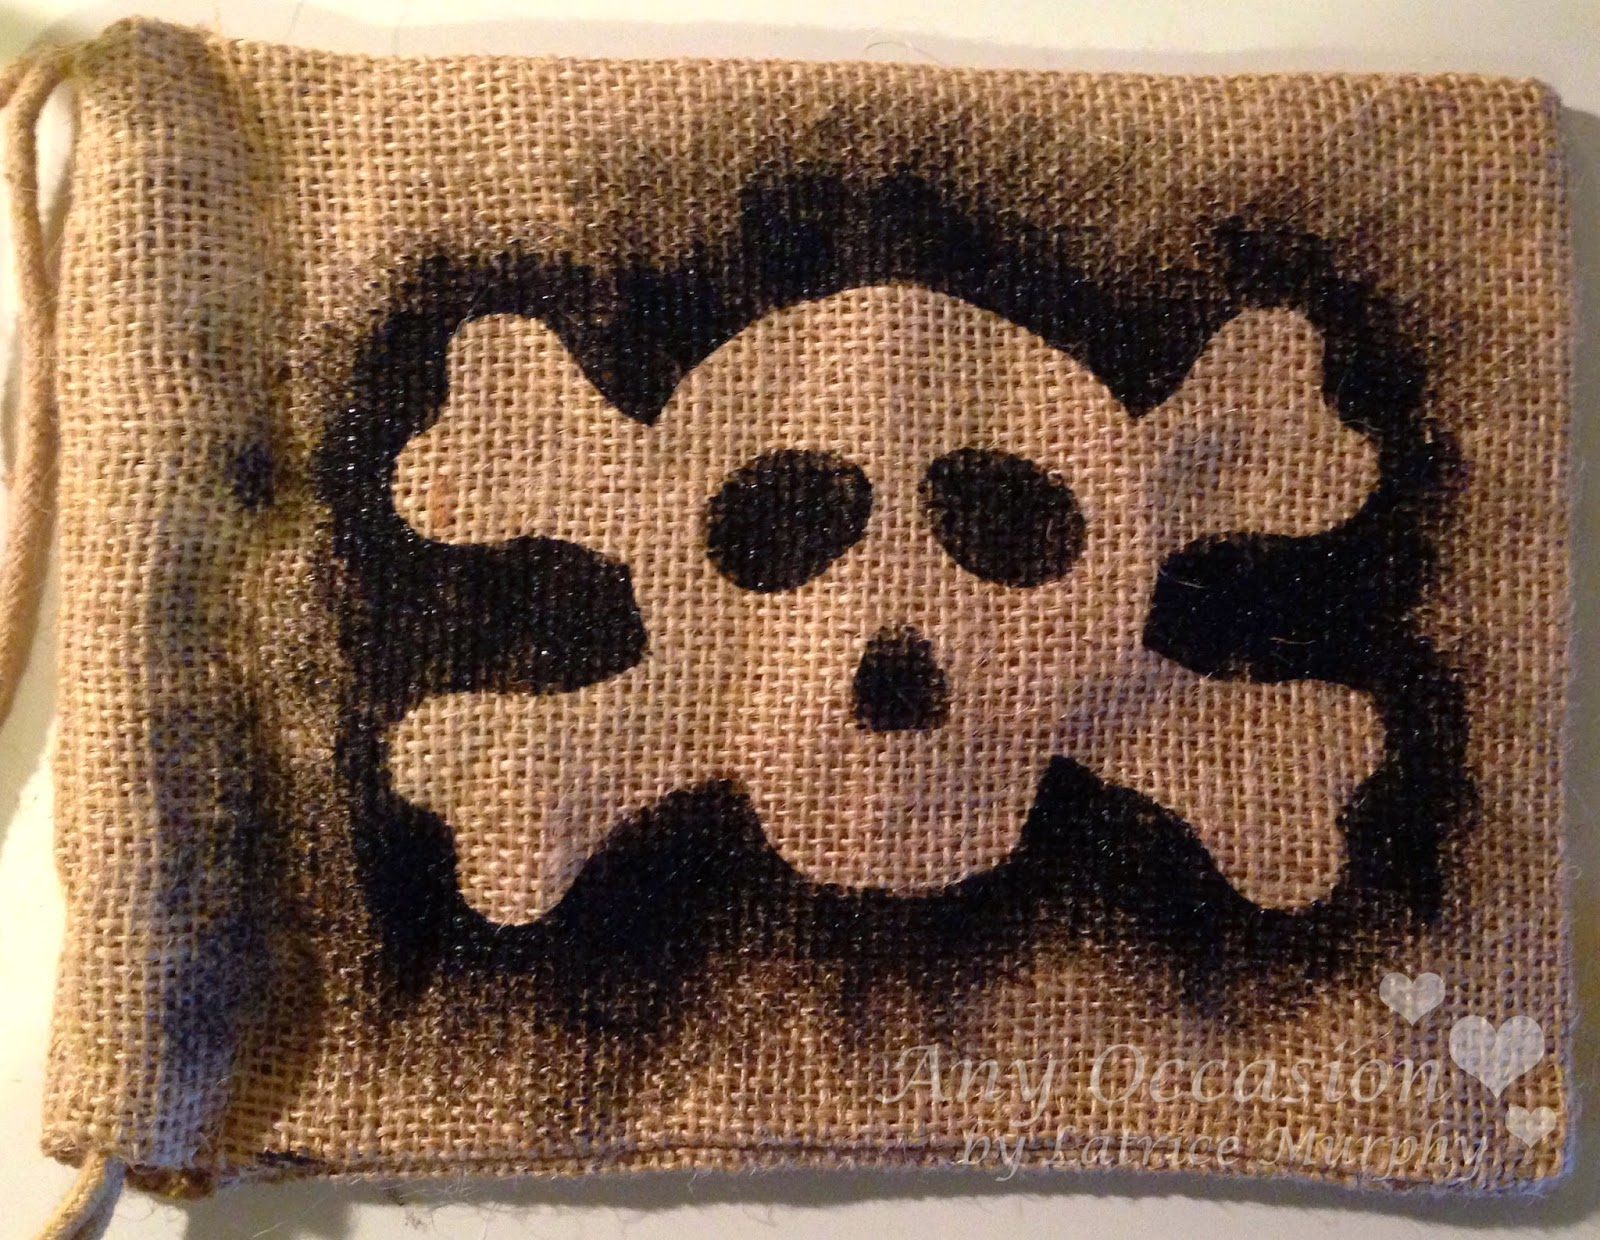 SRM Stickers Blog - Pirate Goodie Bags by Latrice - #muslin #burlap #stencil #twine #thank you #stickers